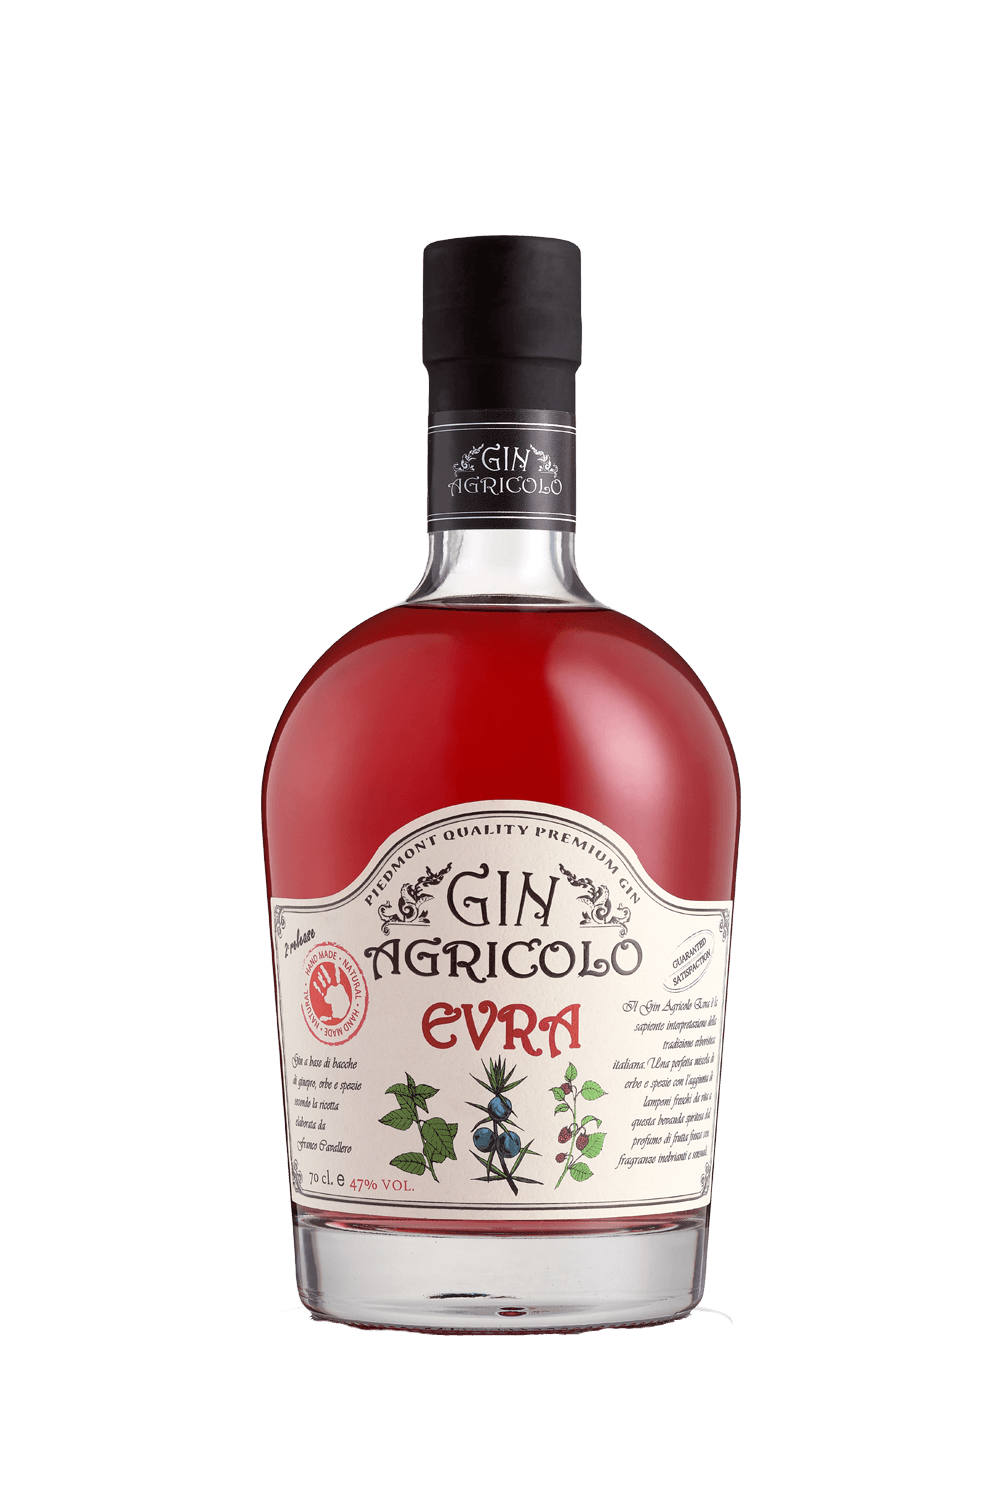 Gin Agricolo Evra